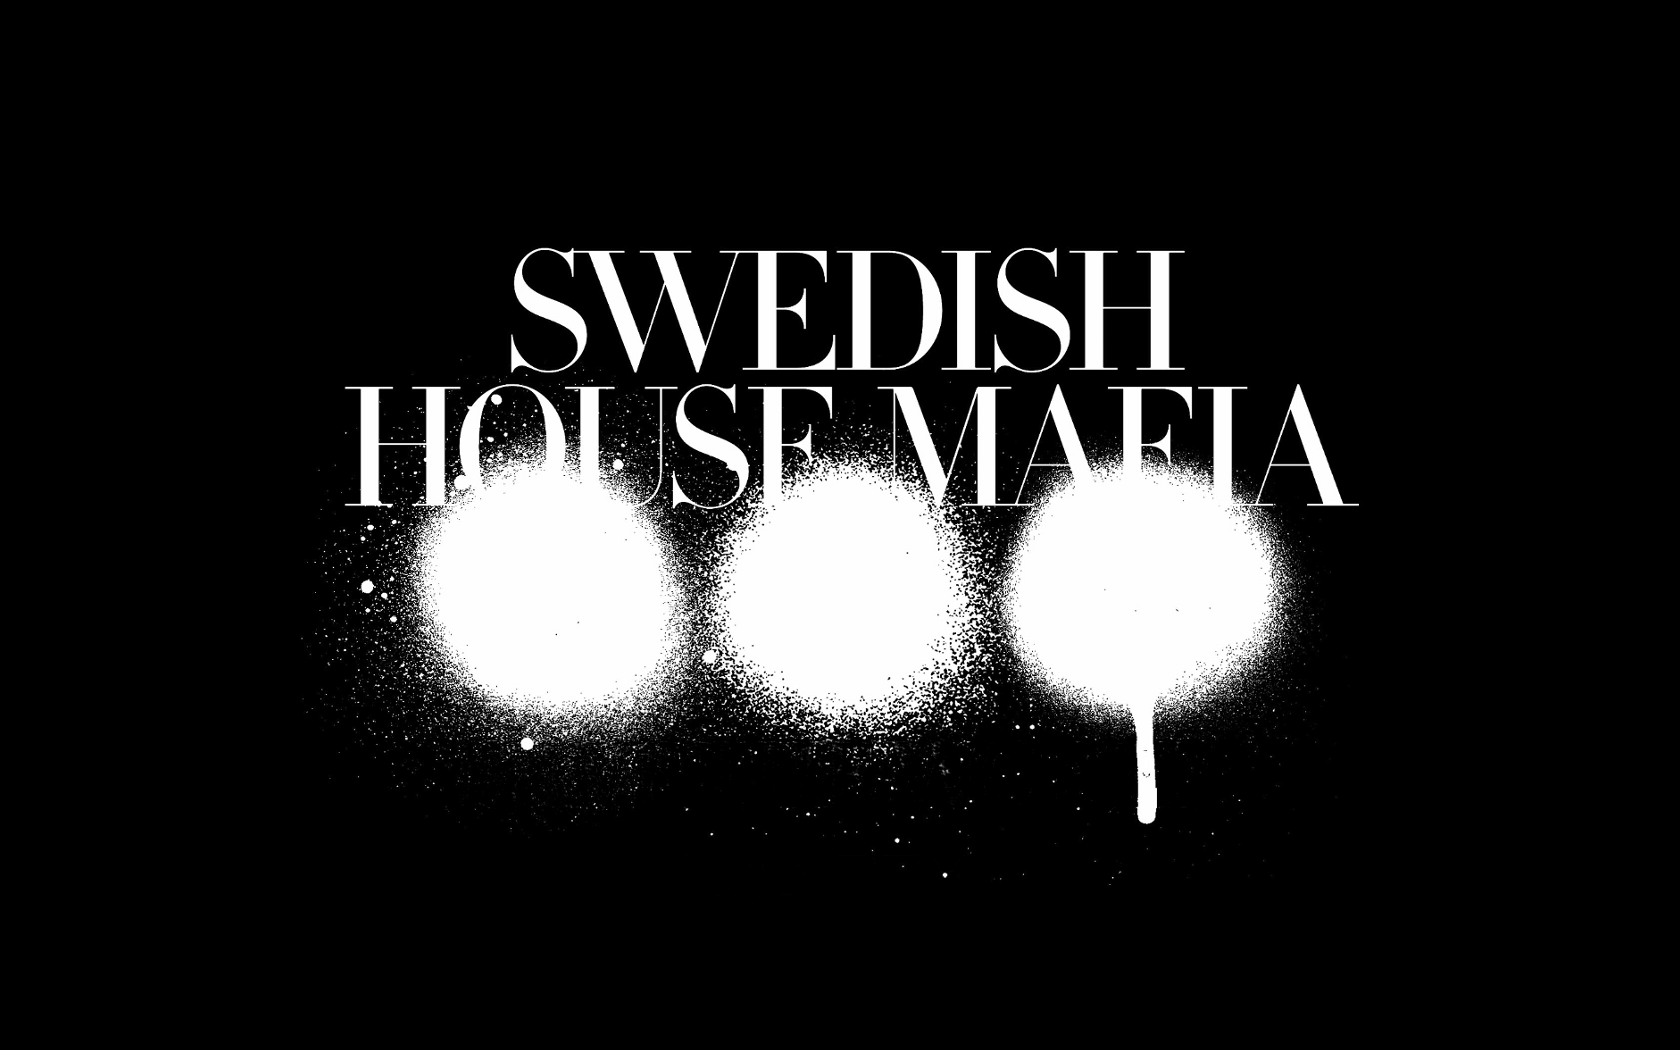 [NEWS] SWEDISH HOUSE MAFIA TO RELEASE LIMITED-EDITION VINYL